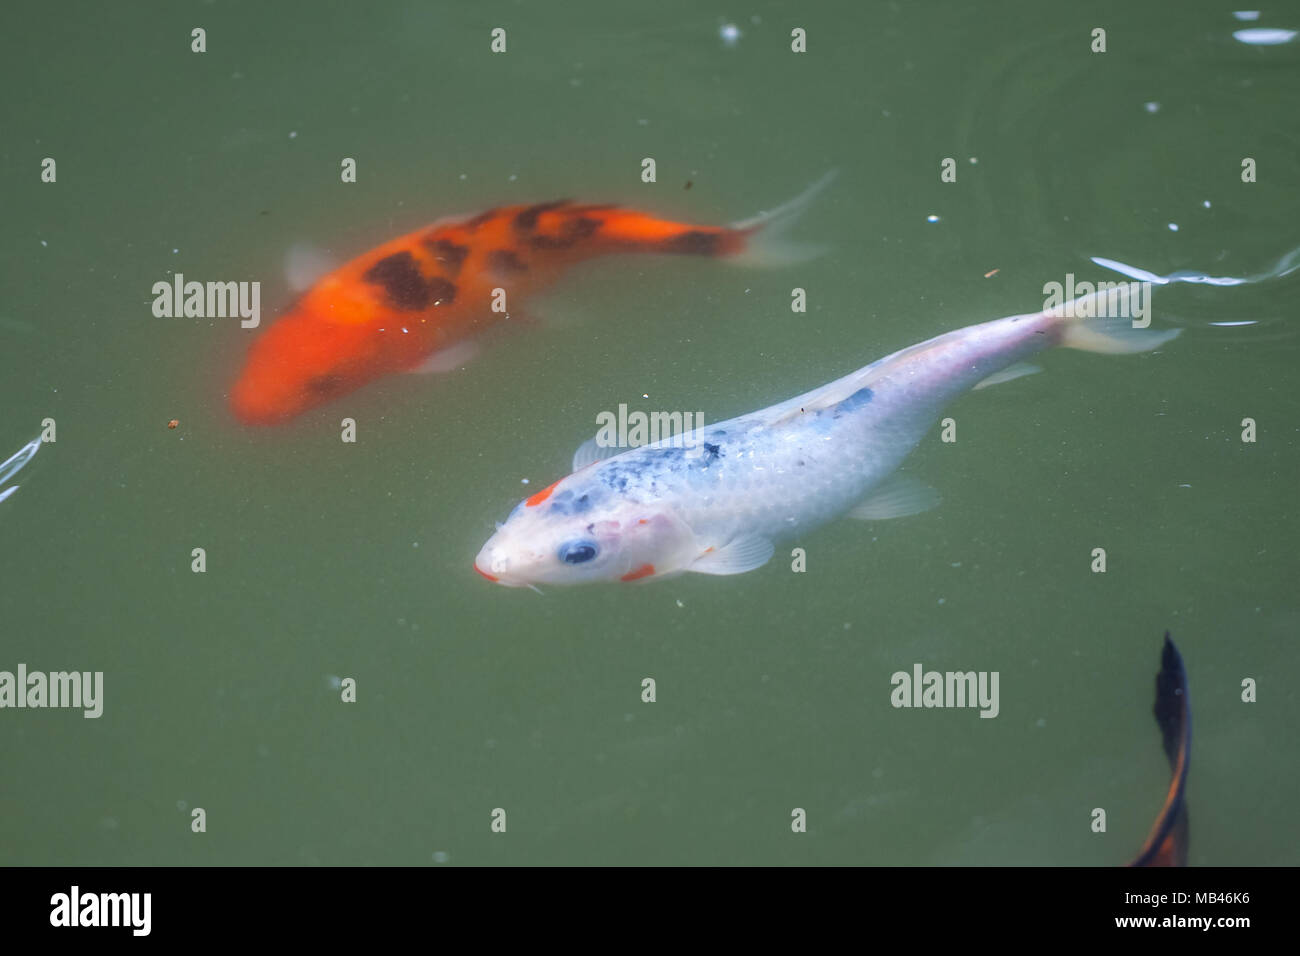 Japan fish call Carp or Koi fish colorful, Many fishes many color ...